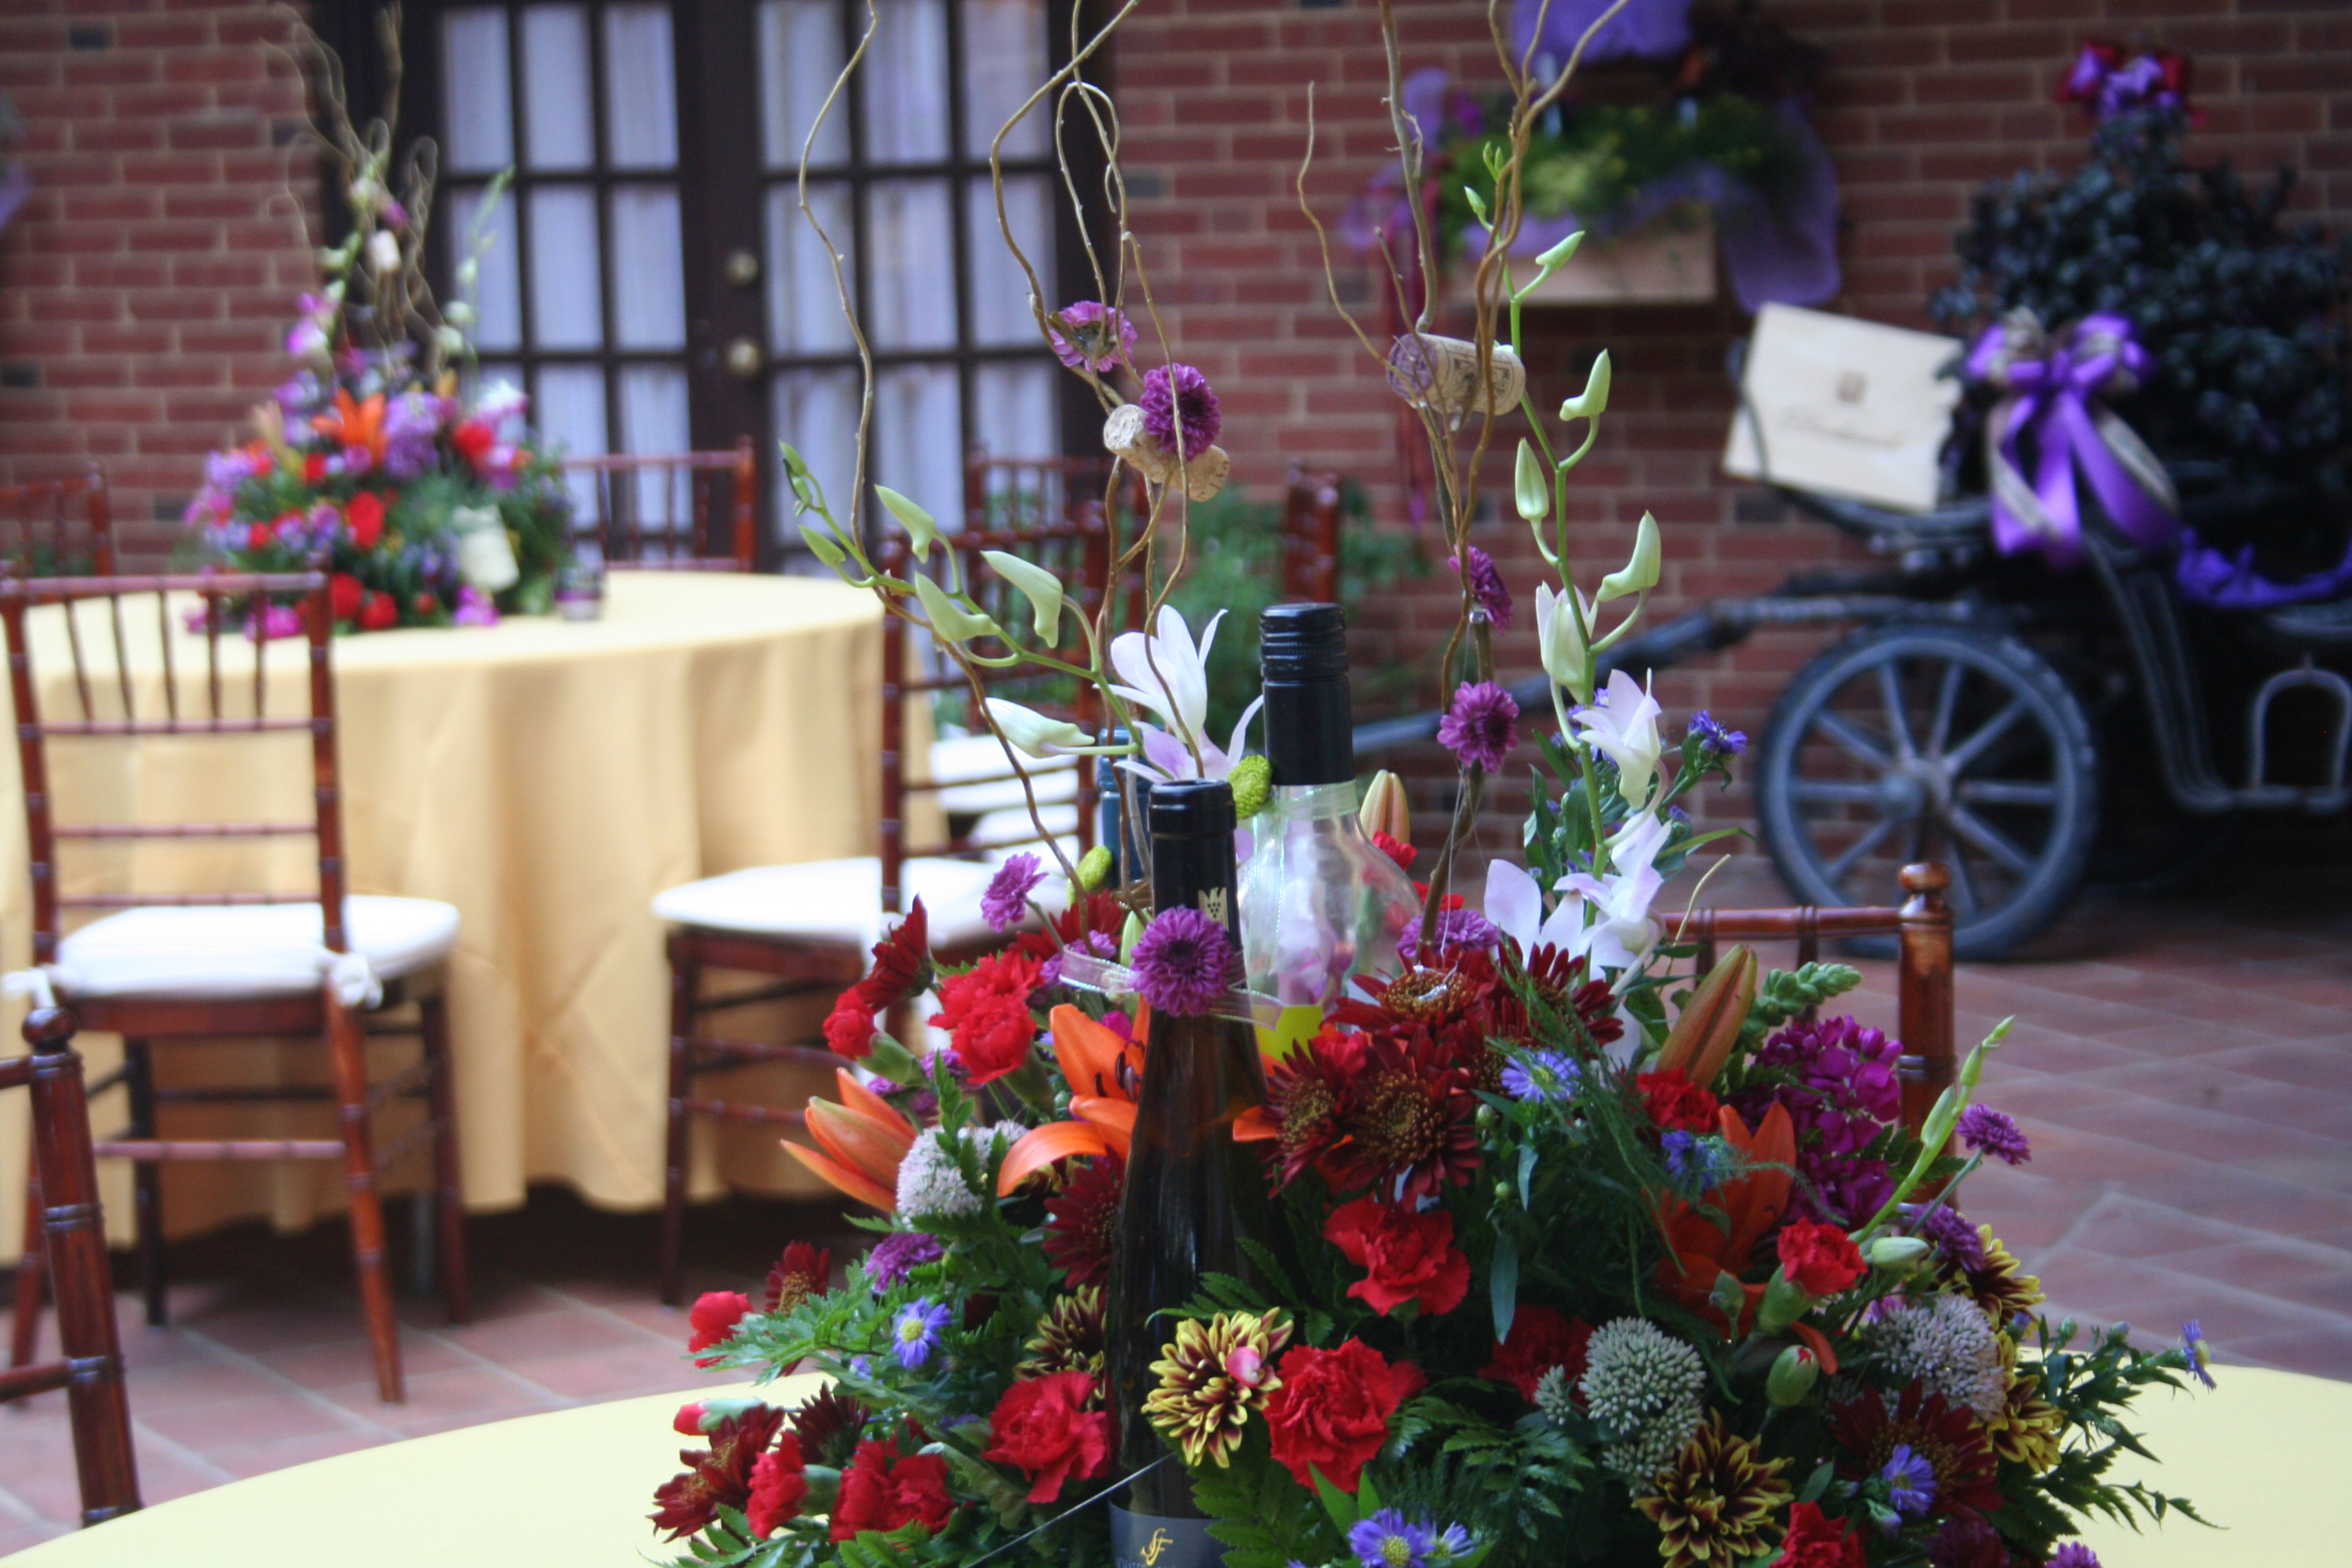 Carriage house september wedding with wine theme for Wedding themes for september